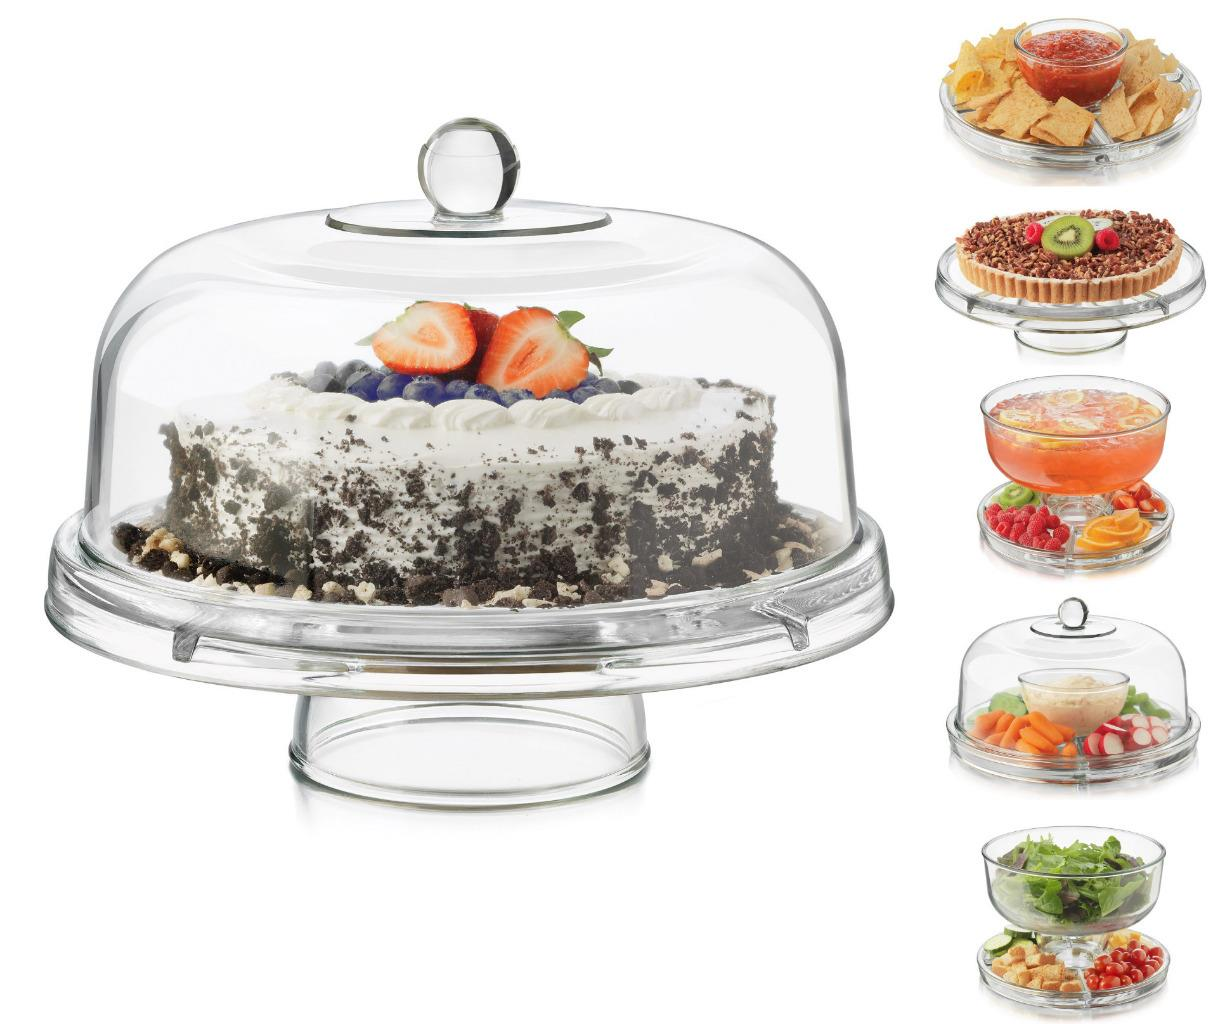 Entertaining has never been easier with Libbey\u0027s 6 in 1 server. The multi-purpose glass dome and server can be used as a punch bowl relish tray cake dome ...  sc 1 st  eBay & Libbey Vidro Selene 6 Em 1 Multi Função servidor Prato De Bolo Punch ...